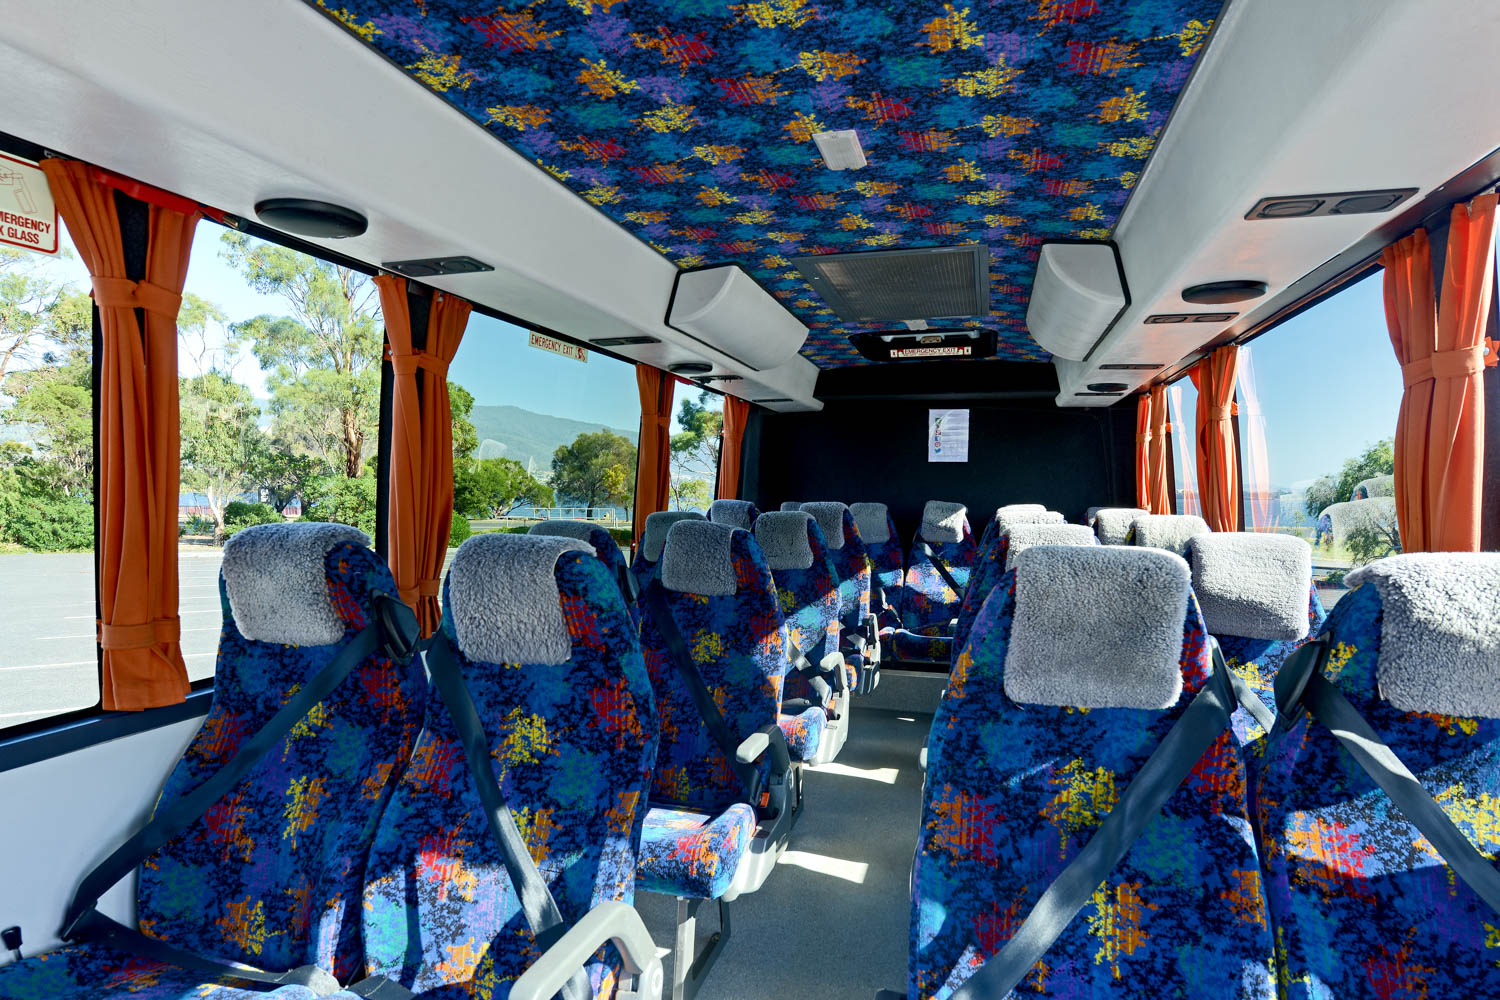 Our luxury - spacious seating & foot areas, cloth reclining seats & curtains -